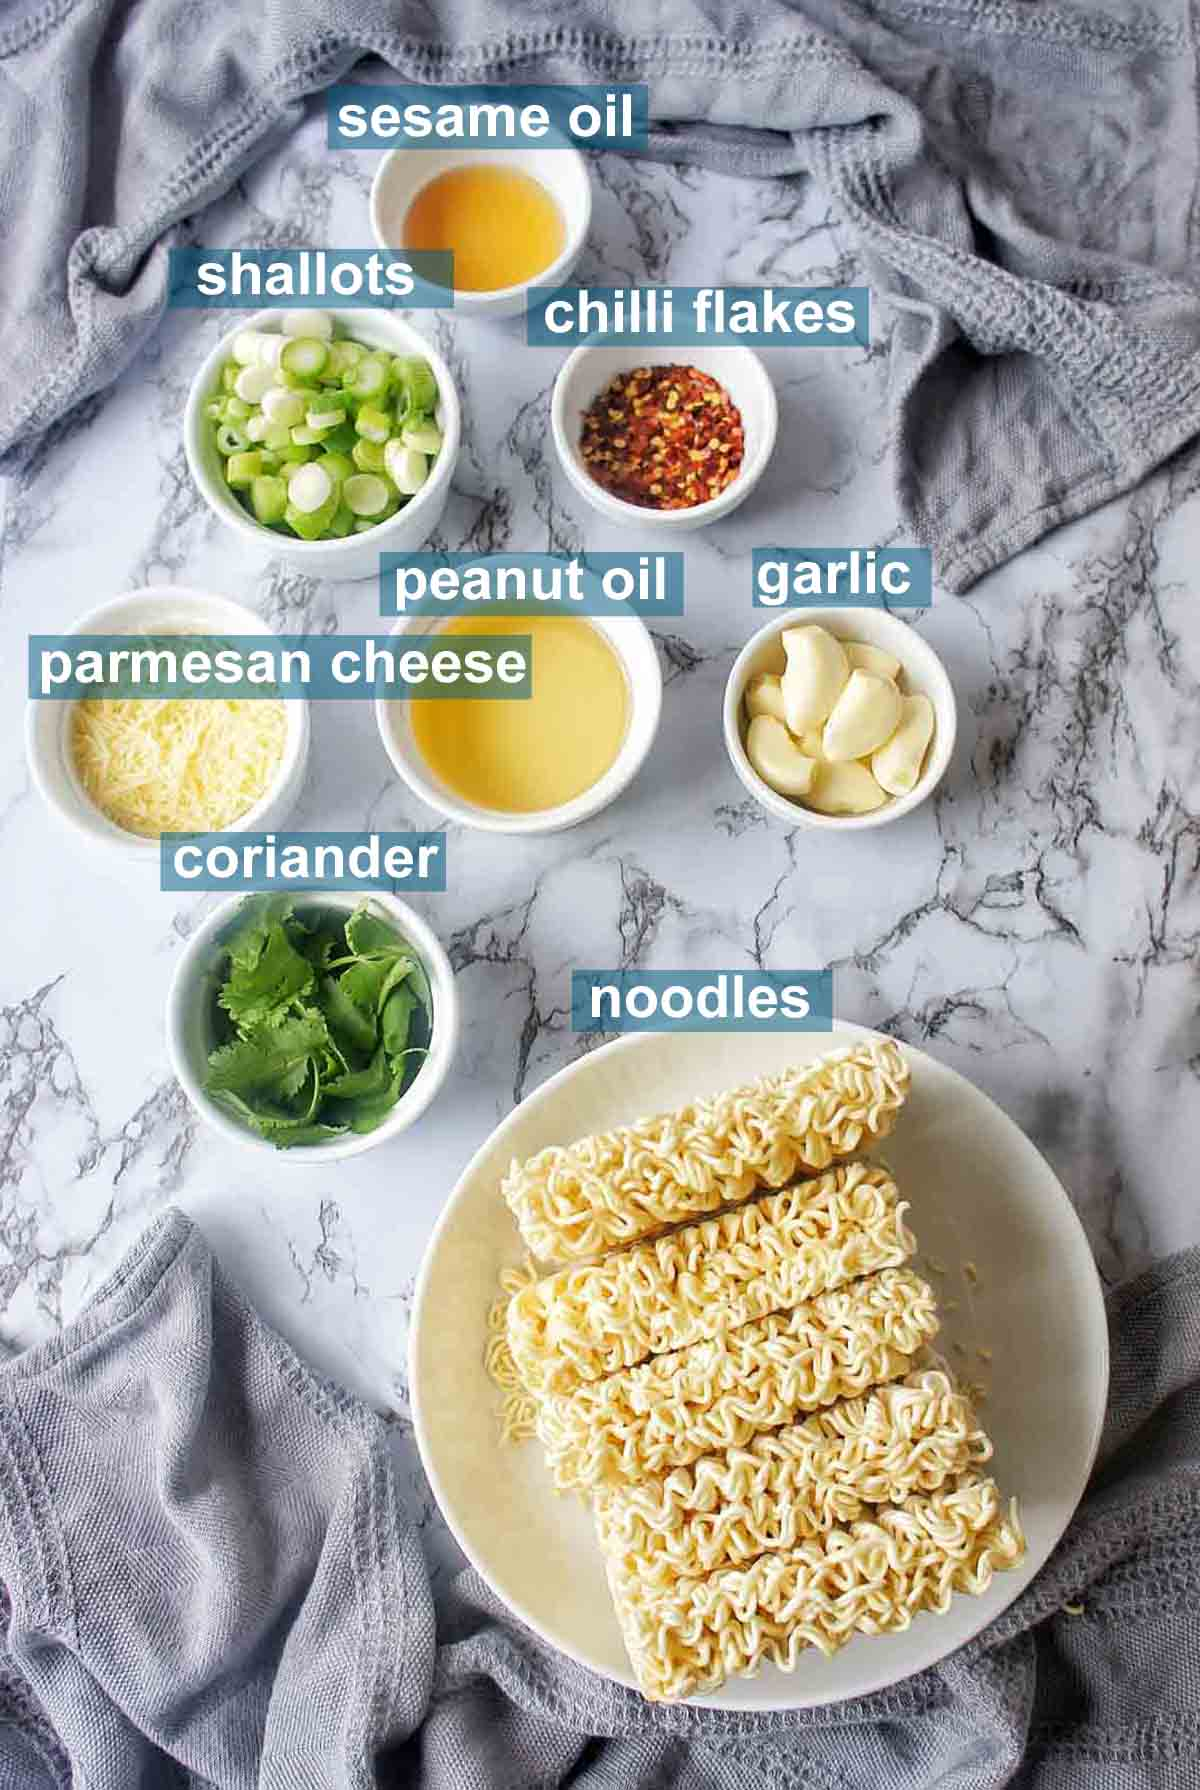 Garlic noodle ingredients on marble background with text labels